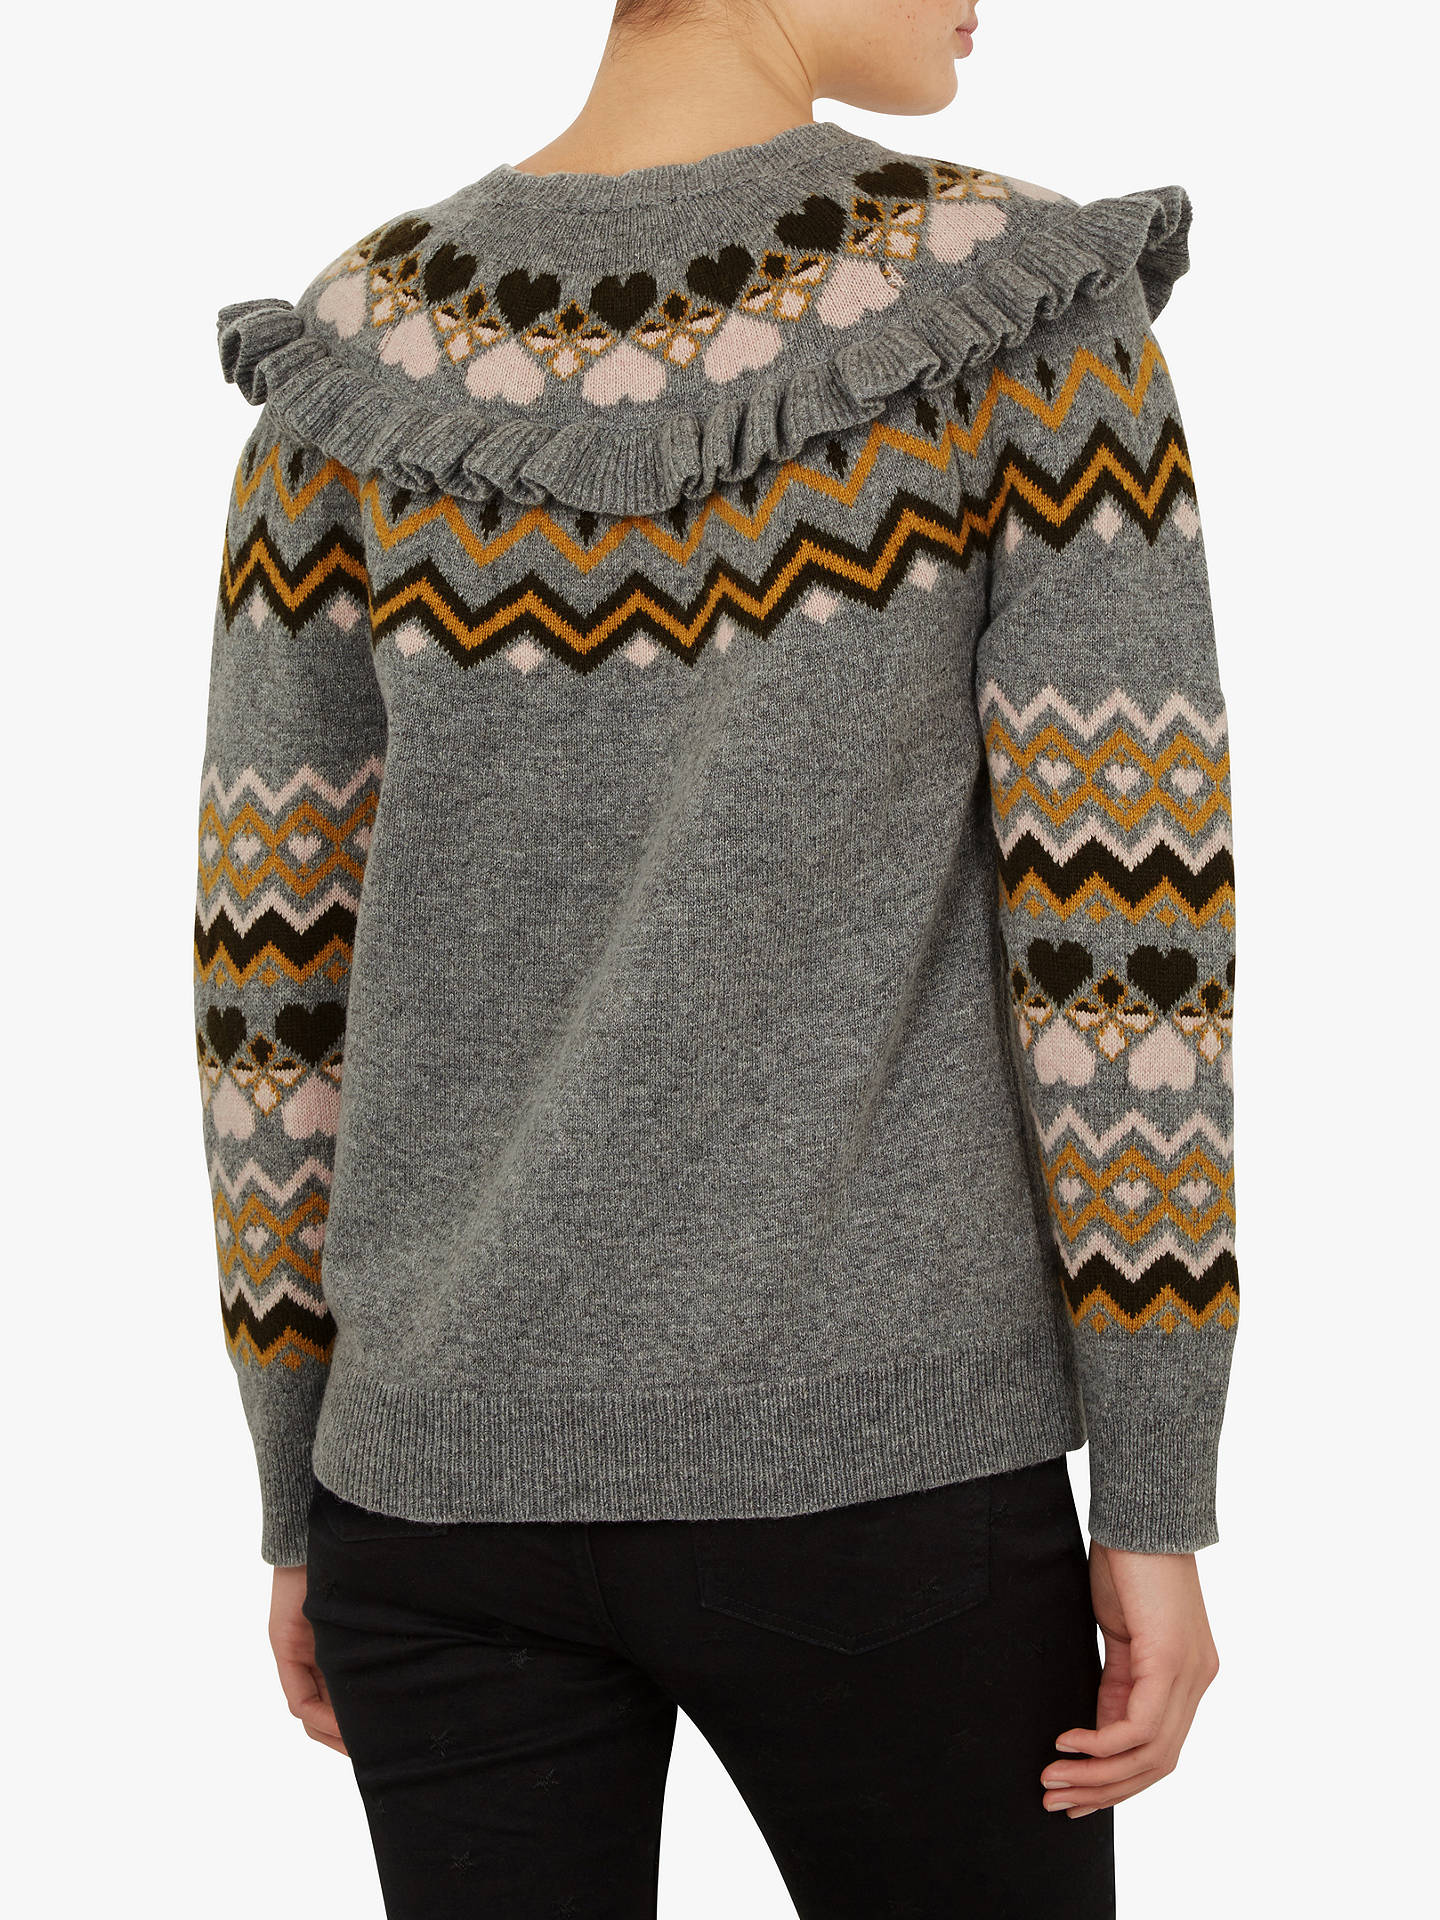 BuyTed Baker Mysheli Sweater, Mid Grey, 3 Online at johnlewis.com